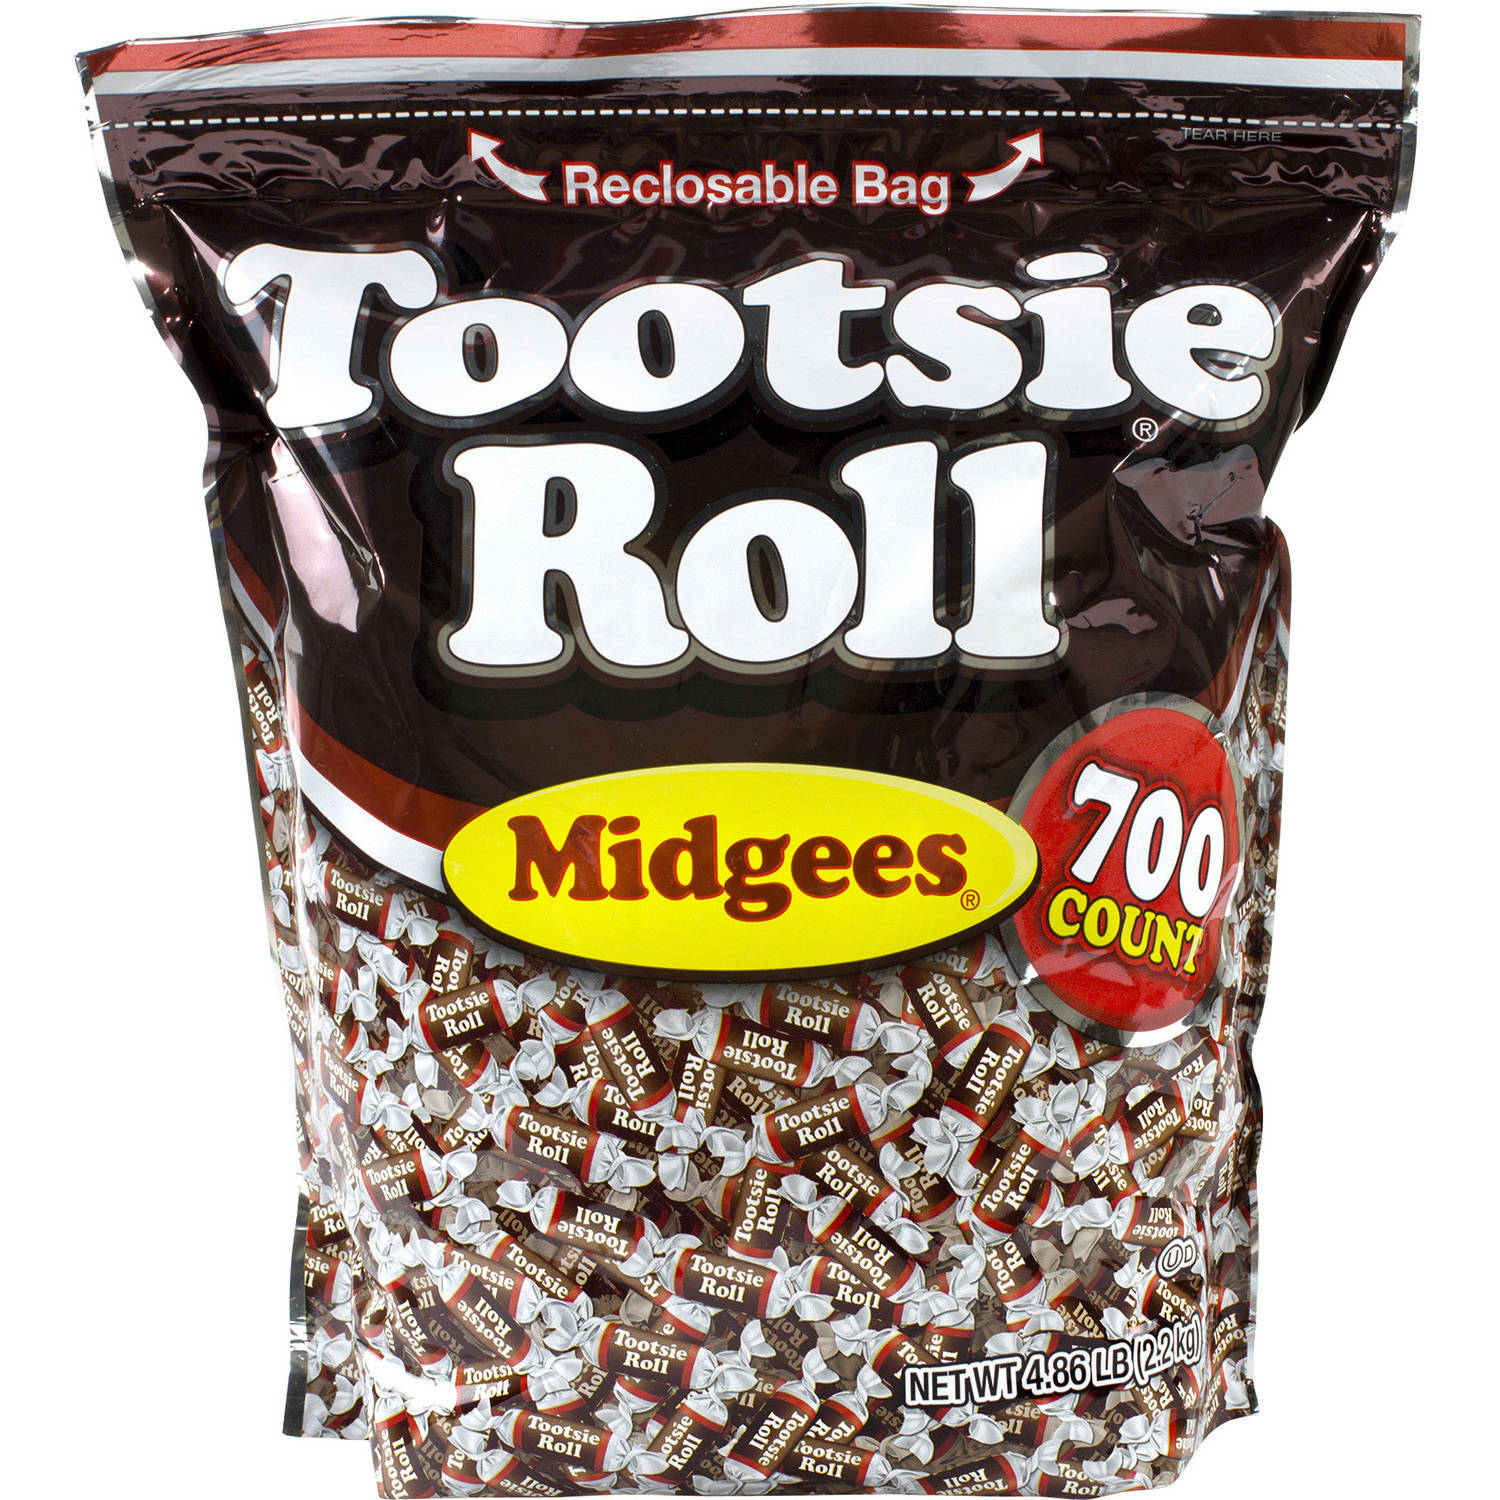 Tootsie Roll, Midgees Candy, 4.86 Lbs, 700 Ct